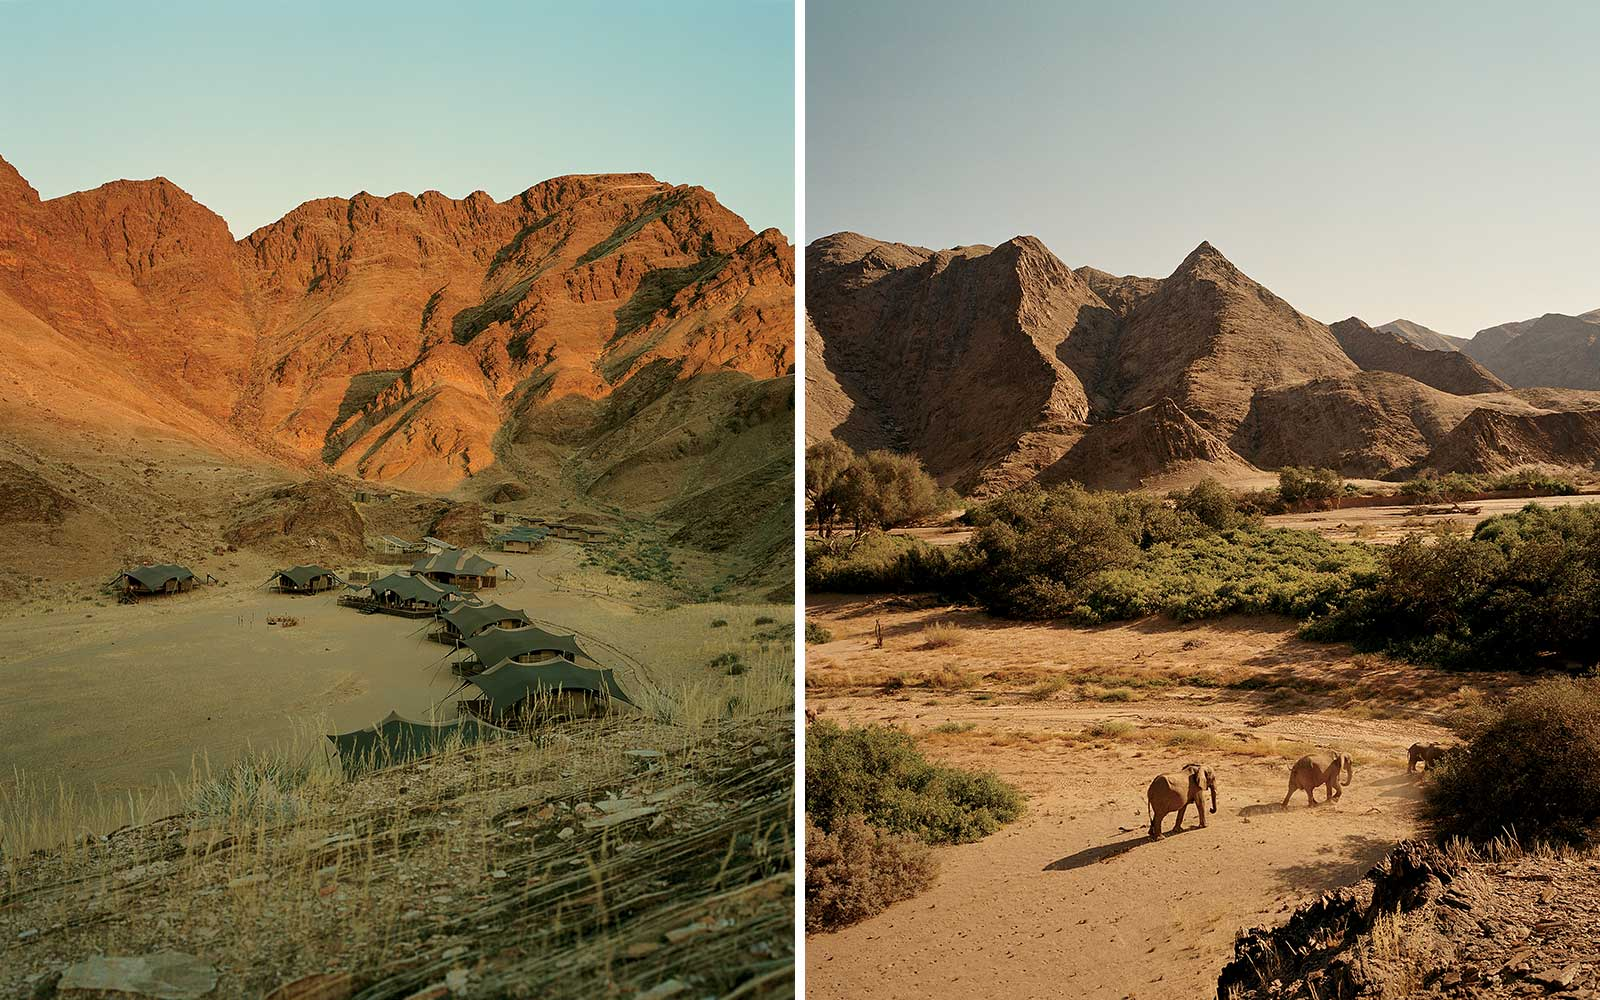 Scenics from Namibia